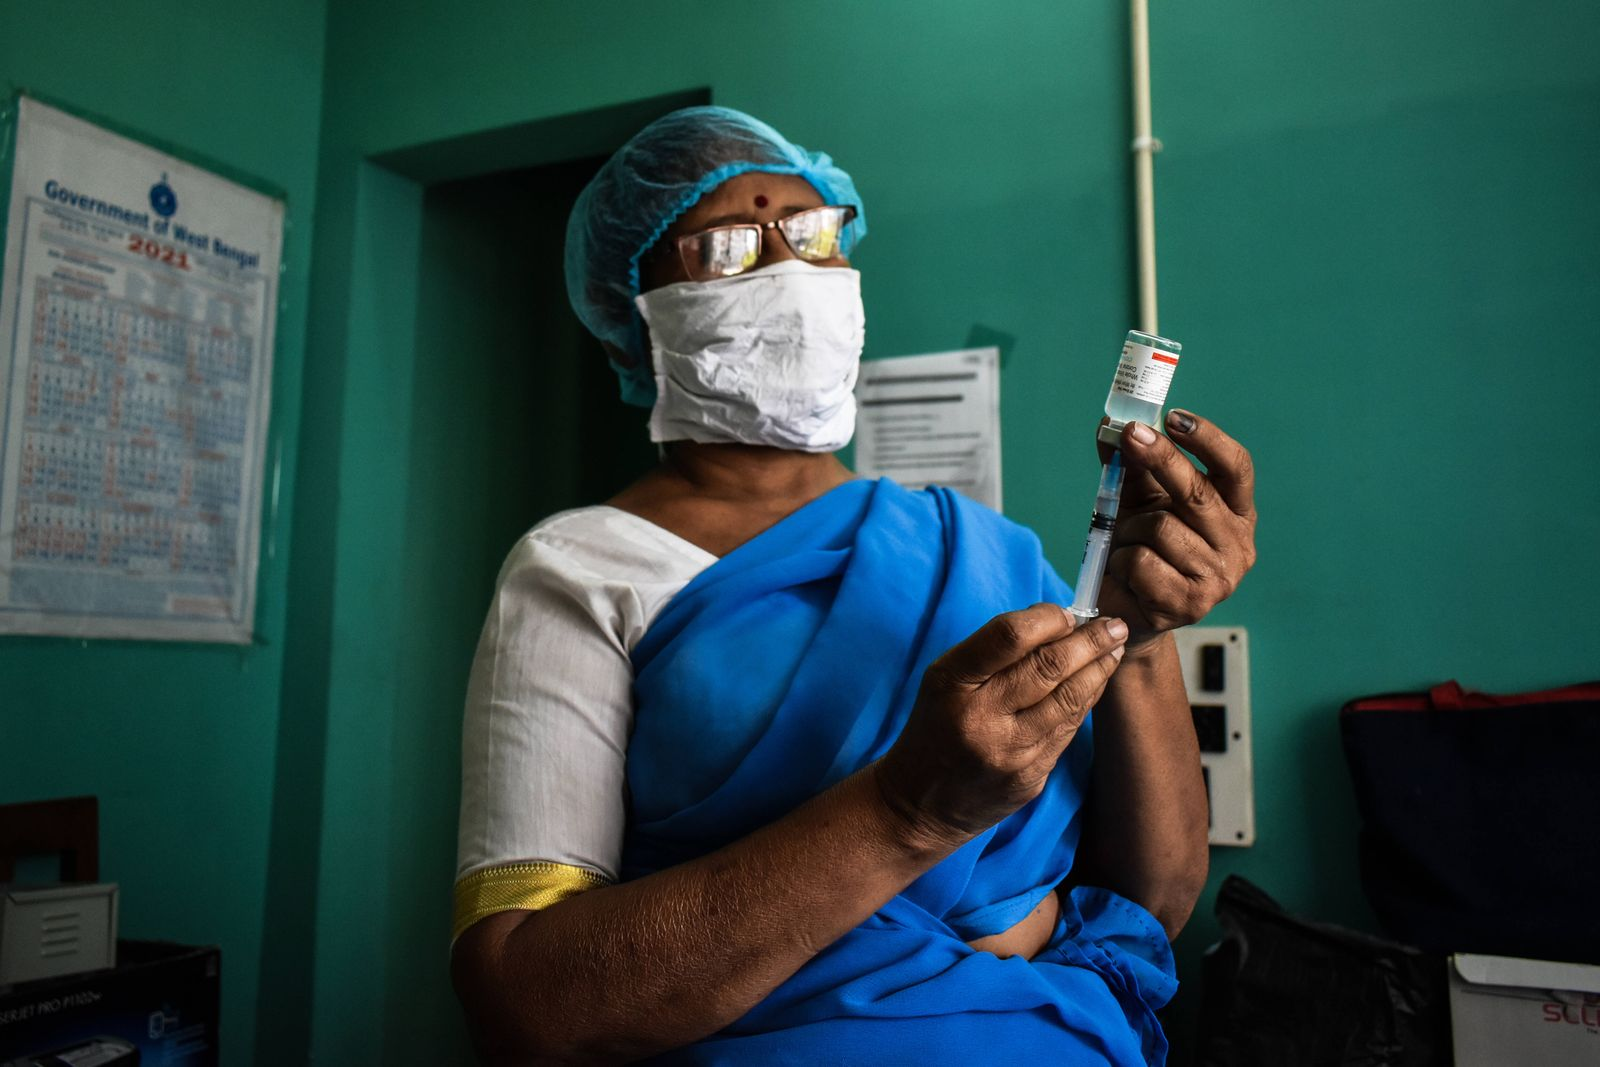 Vaccine crisis in Kolkata A Health worker prepares a dose of Covaxin (Vaccine of Corona Virus) inside on a West Bengal